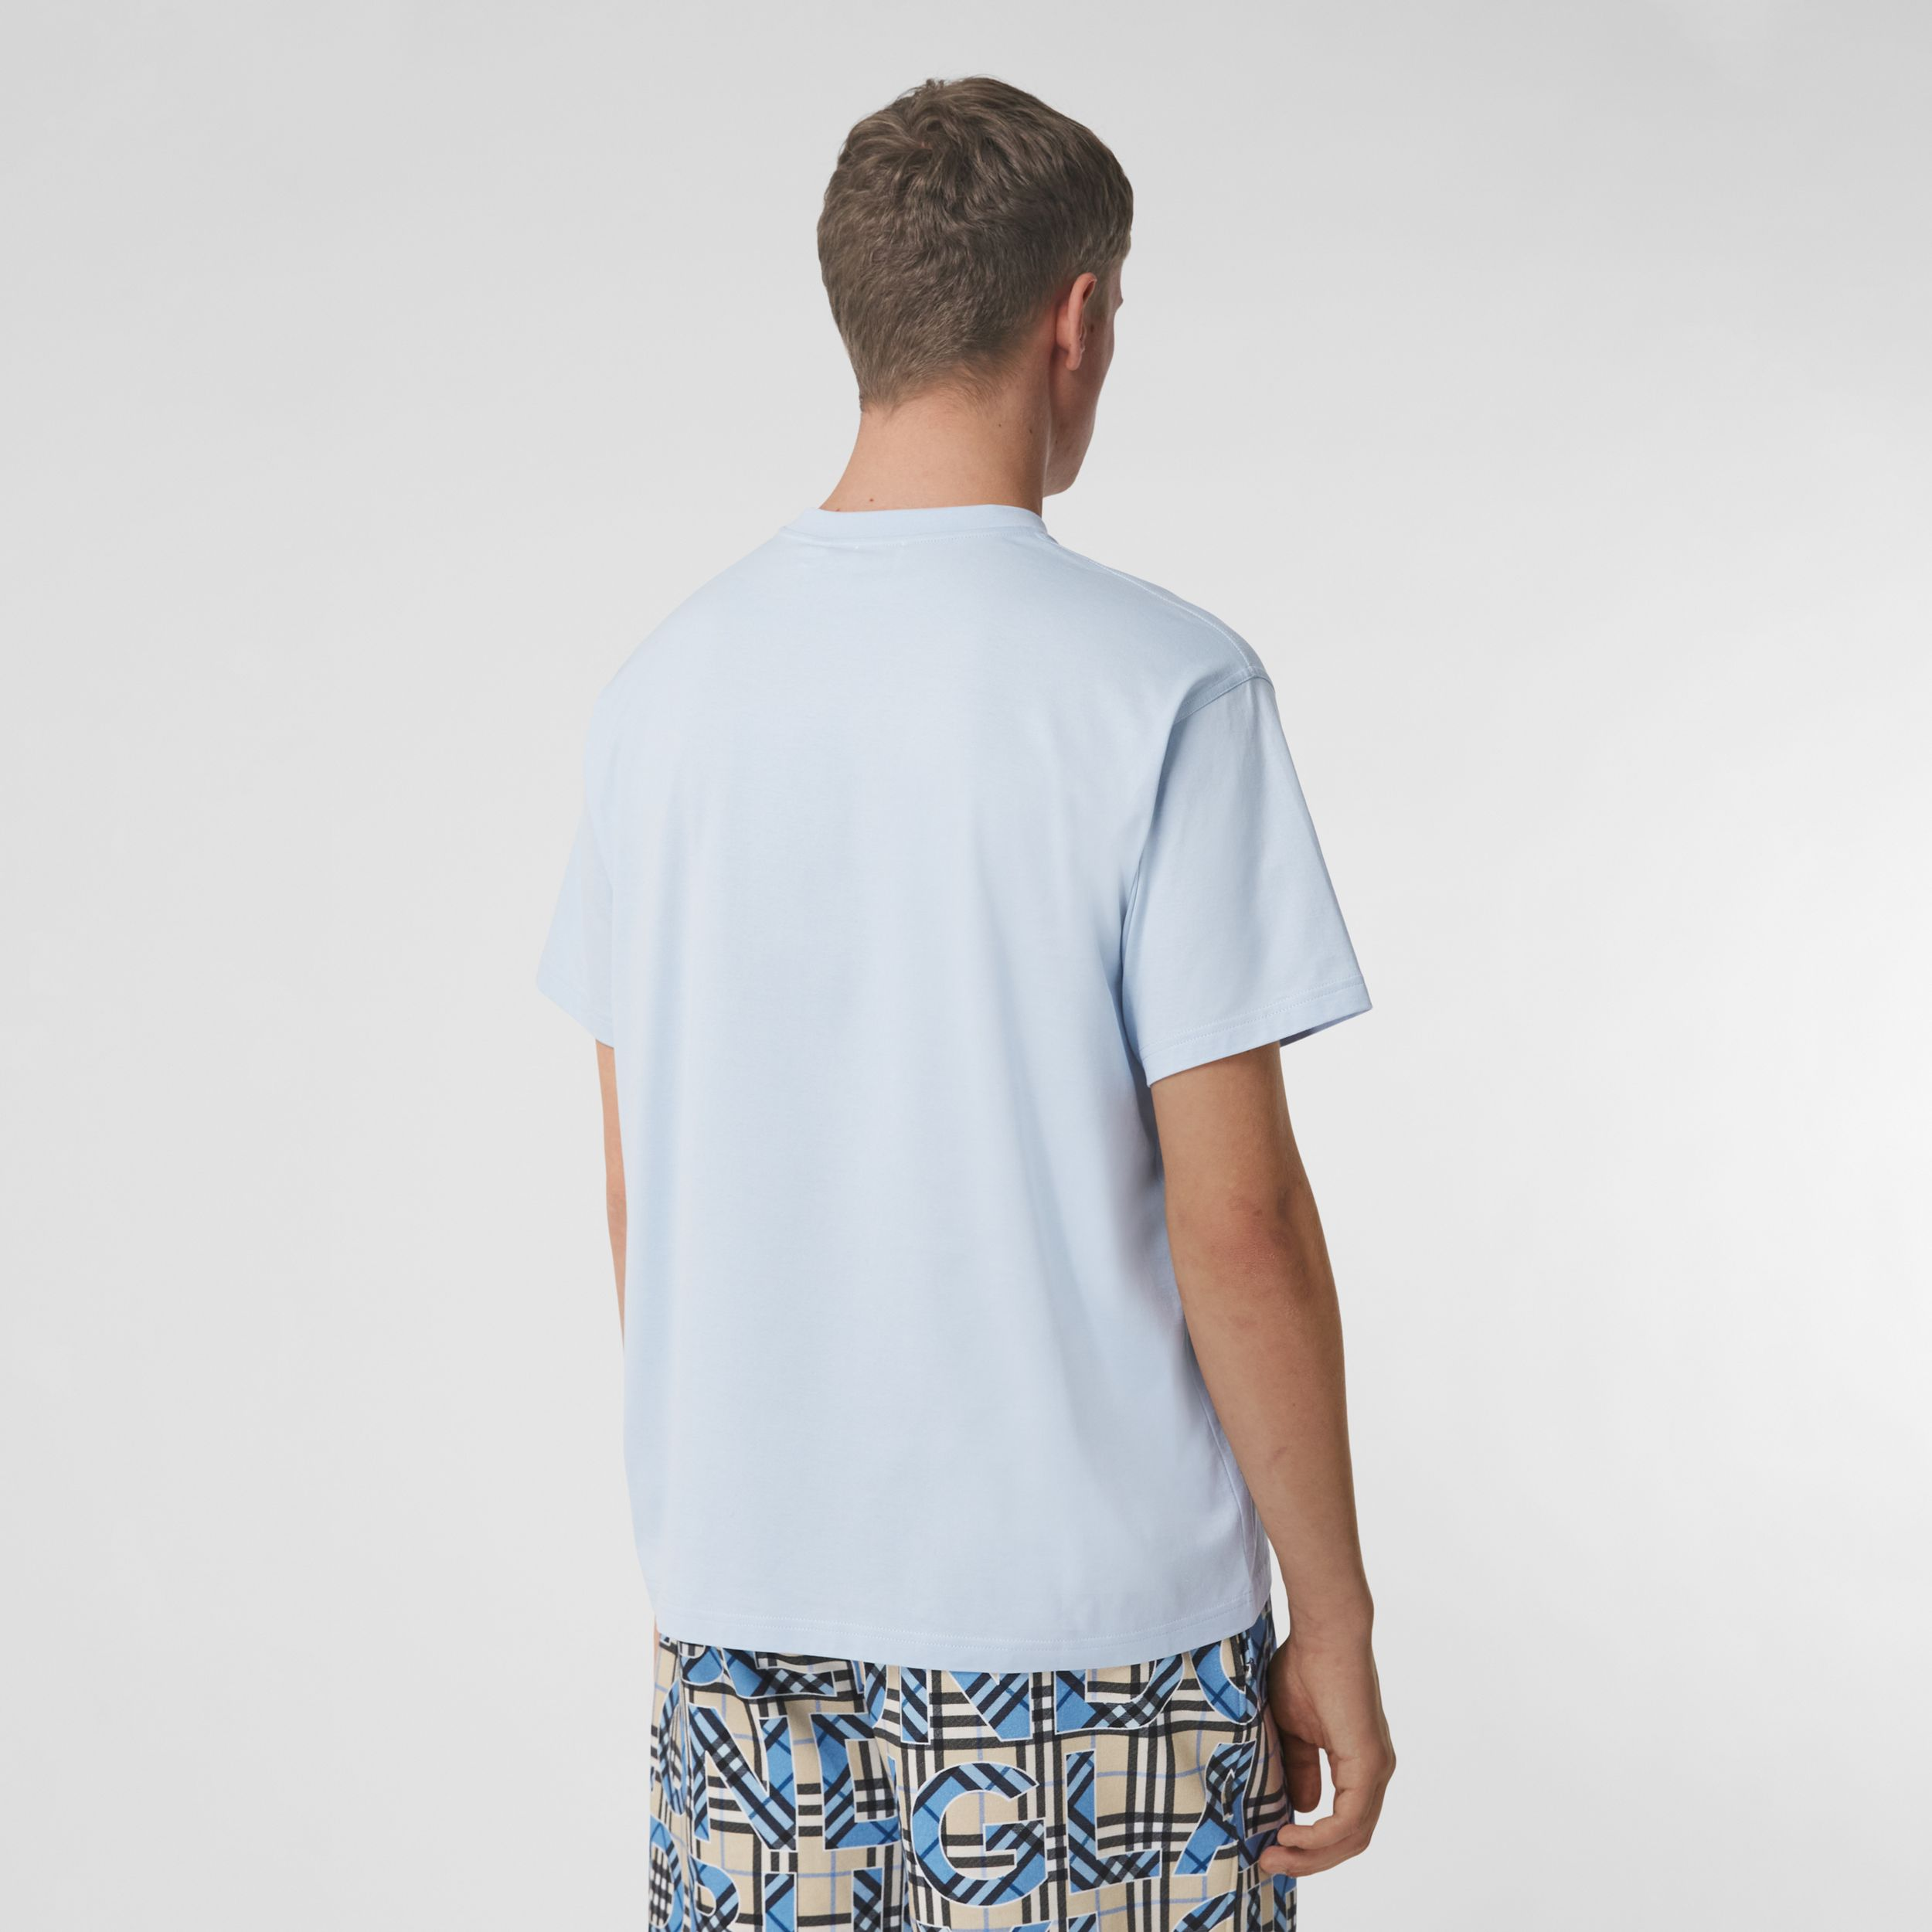 Monogram Motif Cotton Oversized T-shirt in Pale Blue - Men | Burberry - 3